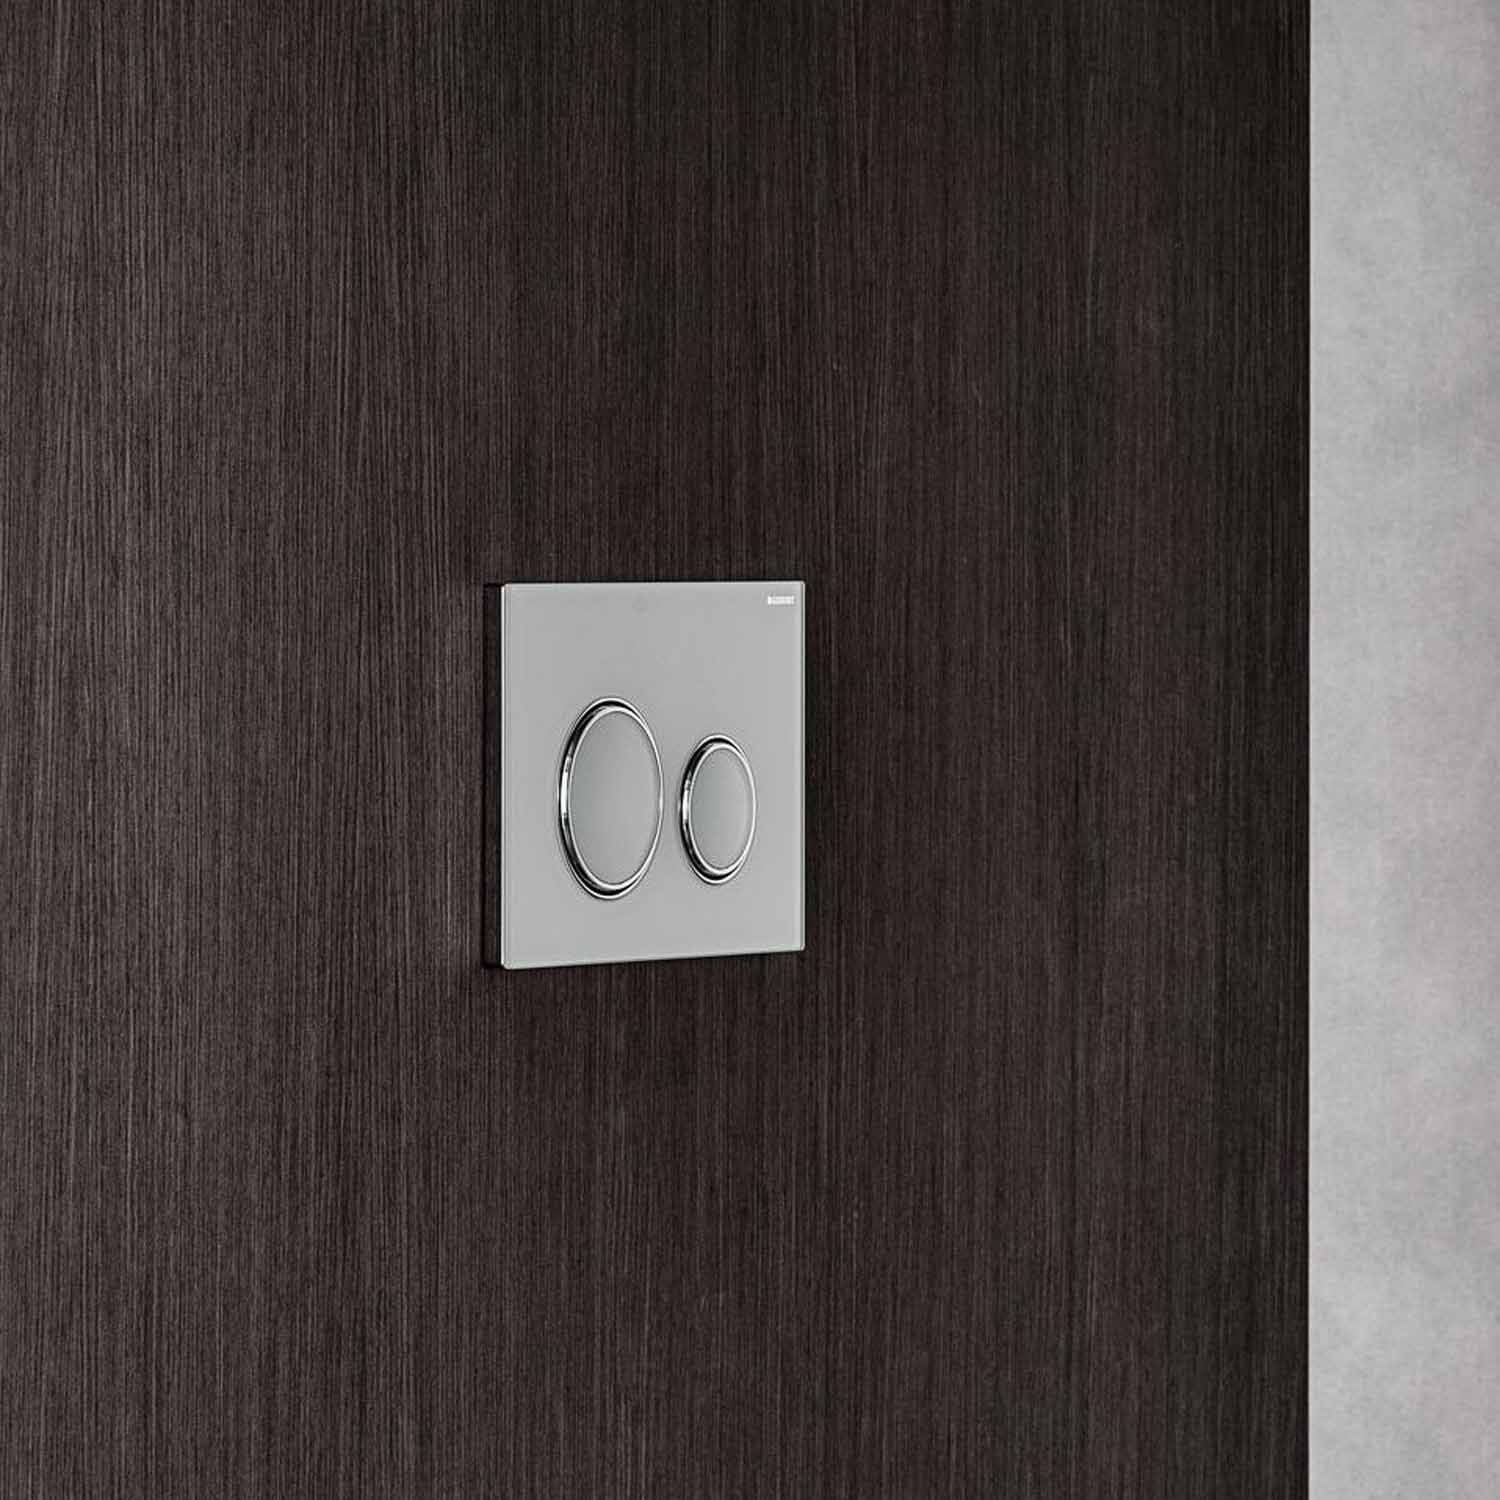 Sigma Round Dual Action Flush Plate with a white and chrome finish lifestyle image